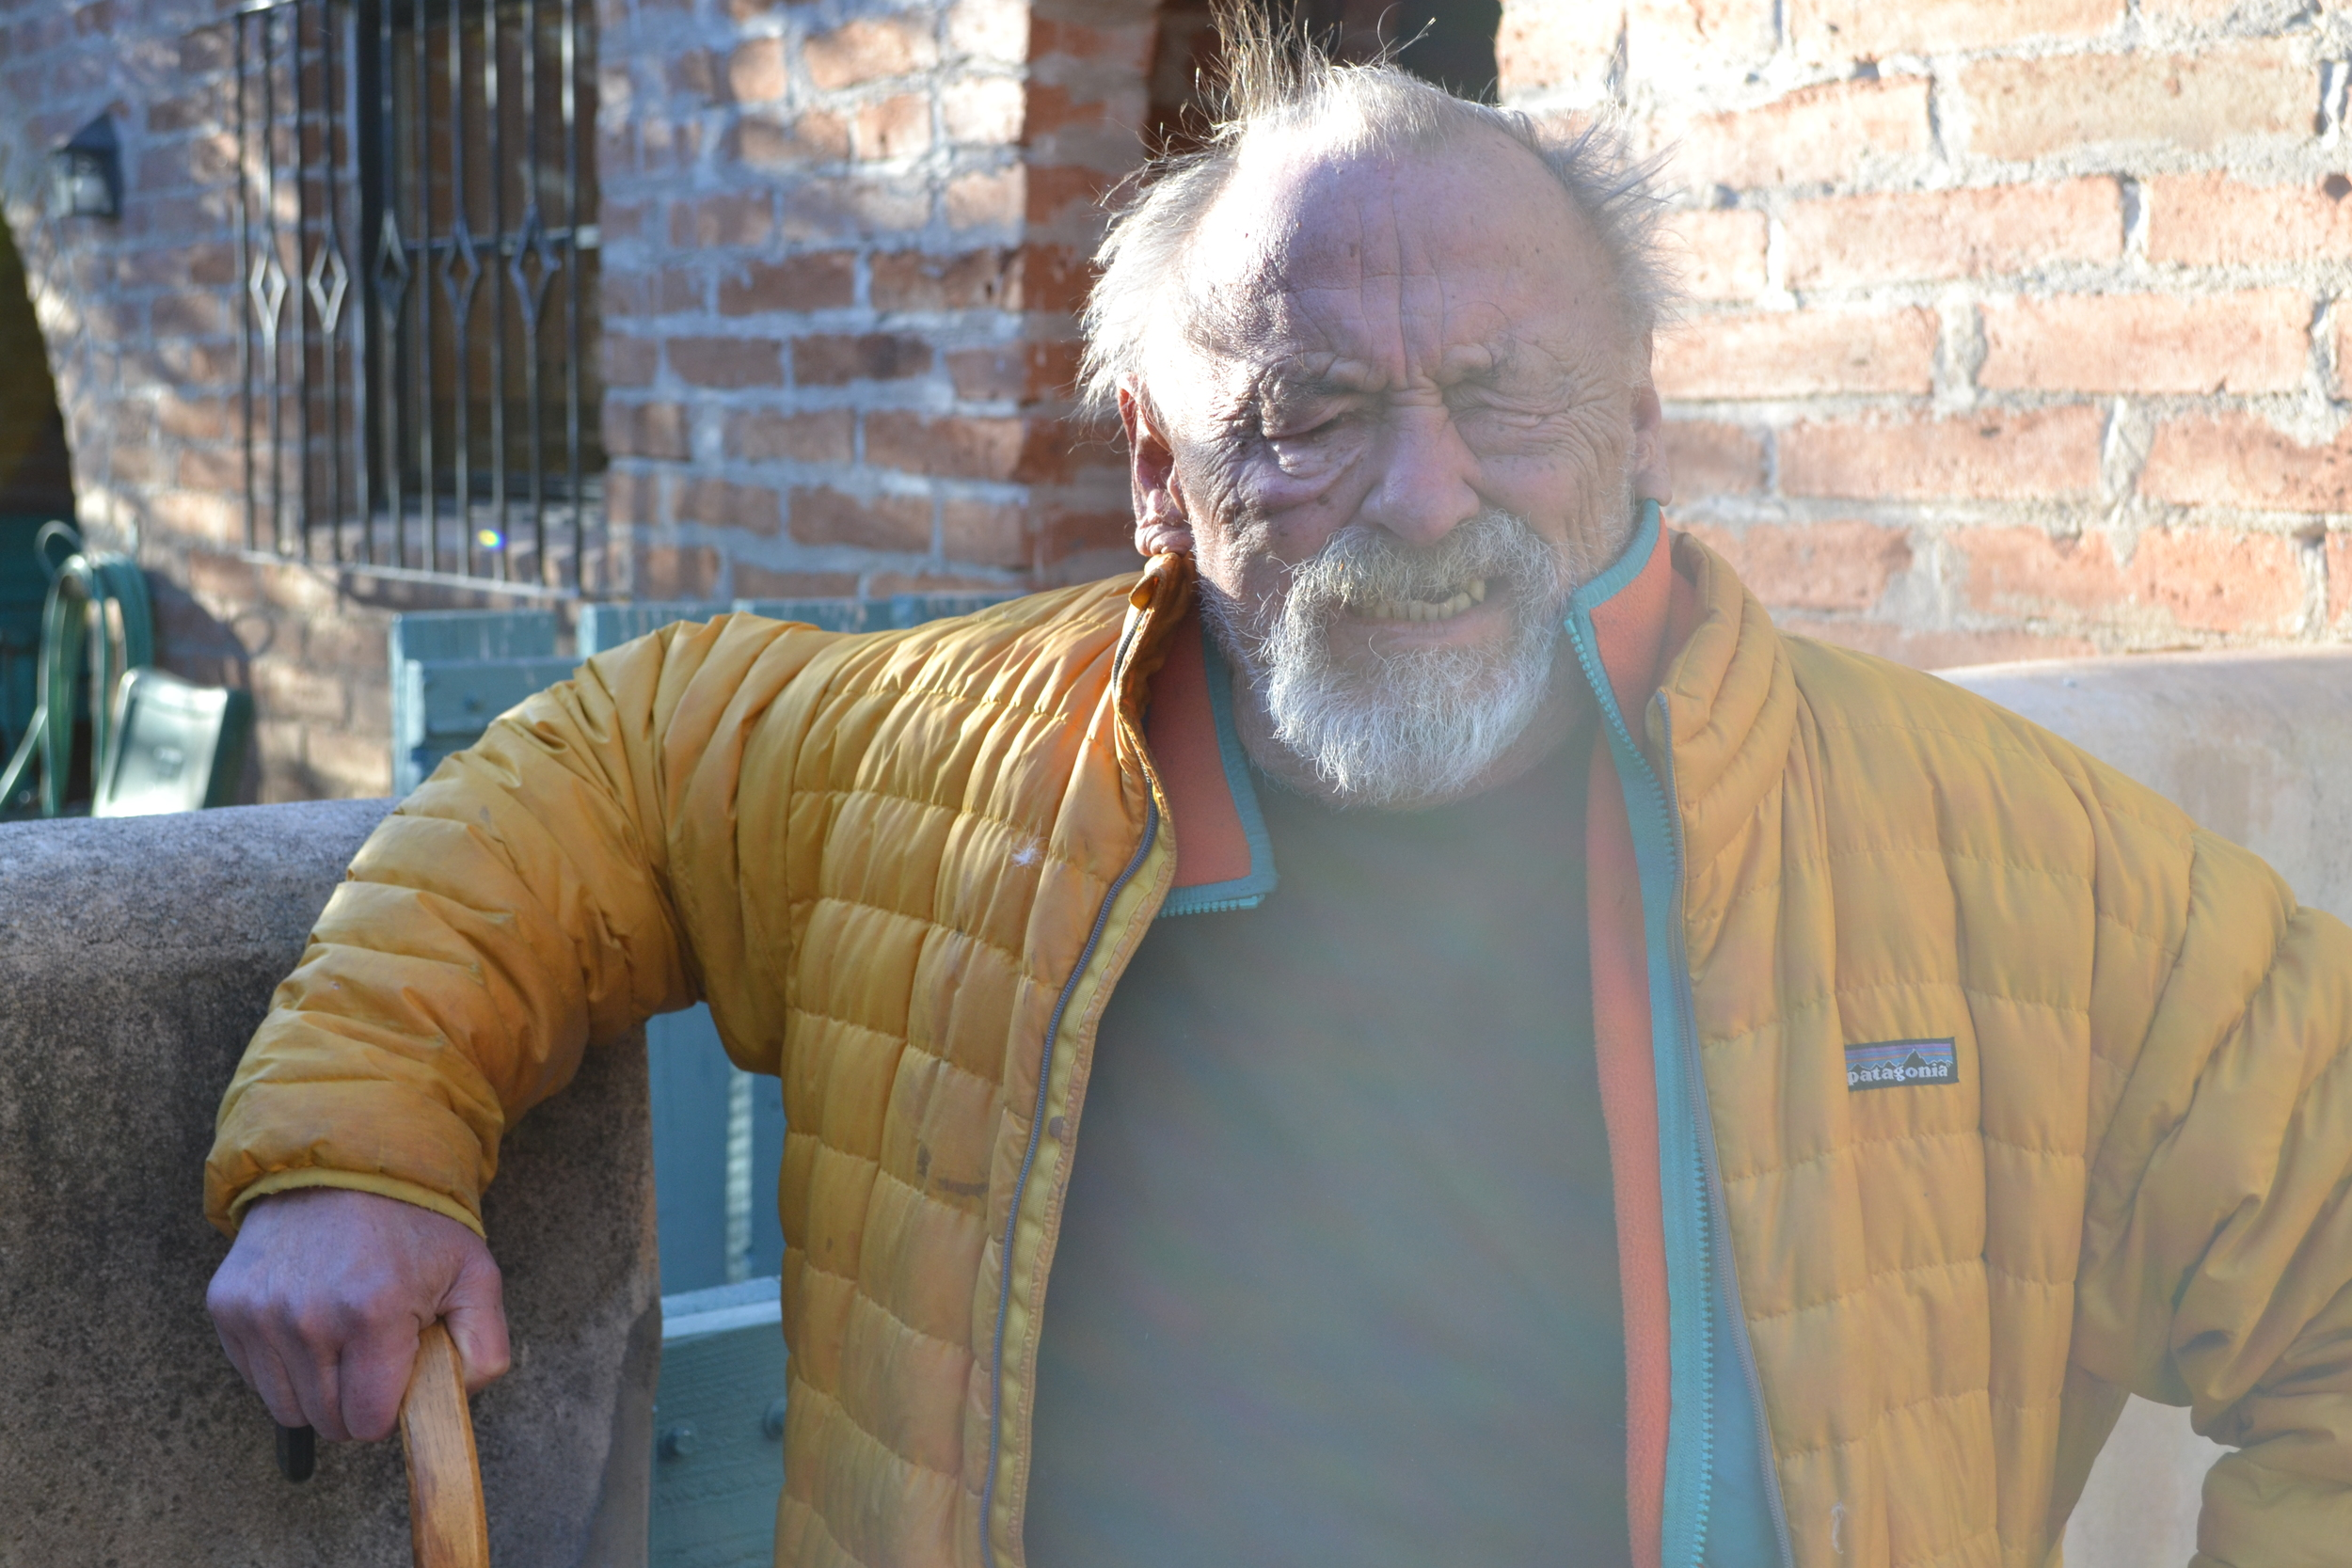 Jim Harrison poses for the camera outside his Patagonia ranch house.